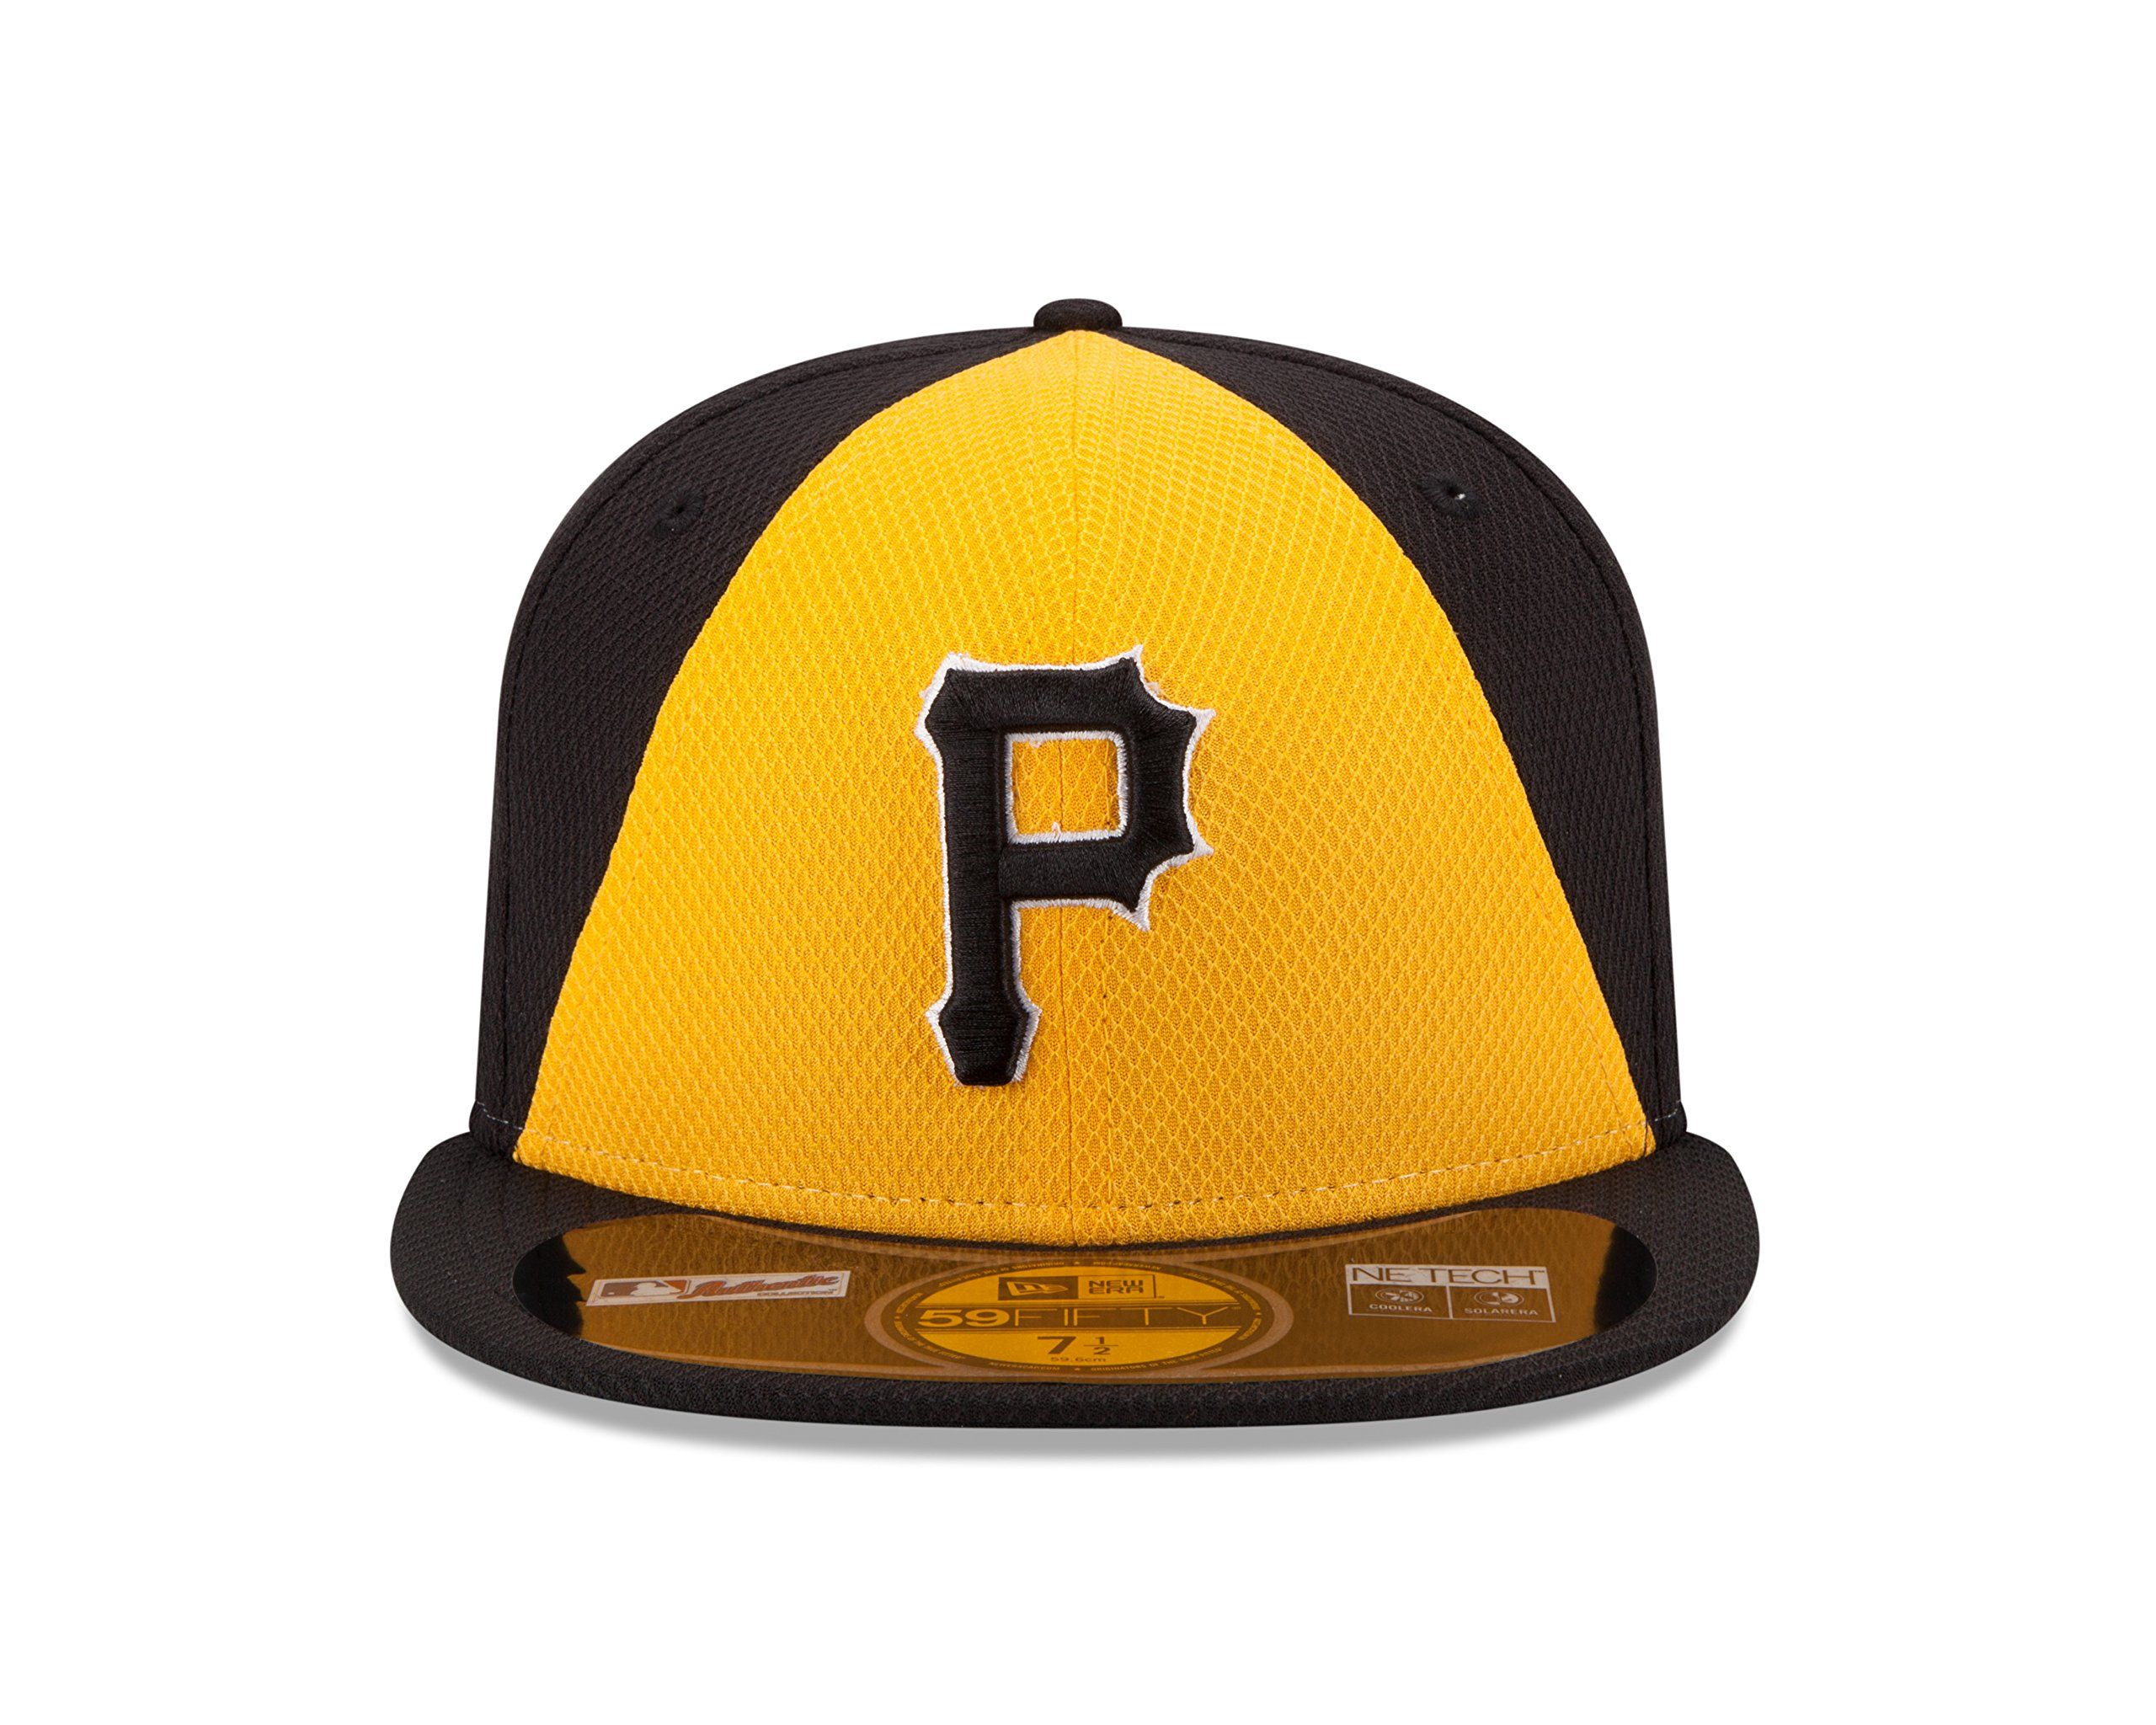 Mlb Pittsburgh Pirates 2014 All Star Game 59fifty On Field Cap 7 3 8 All Star Stars Cap